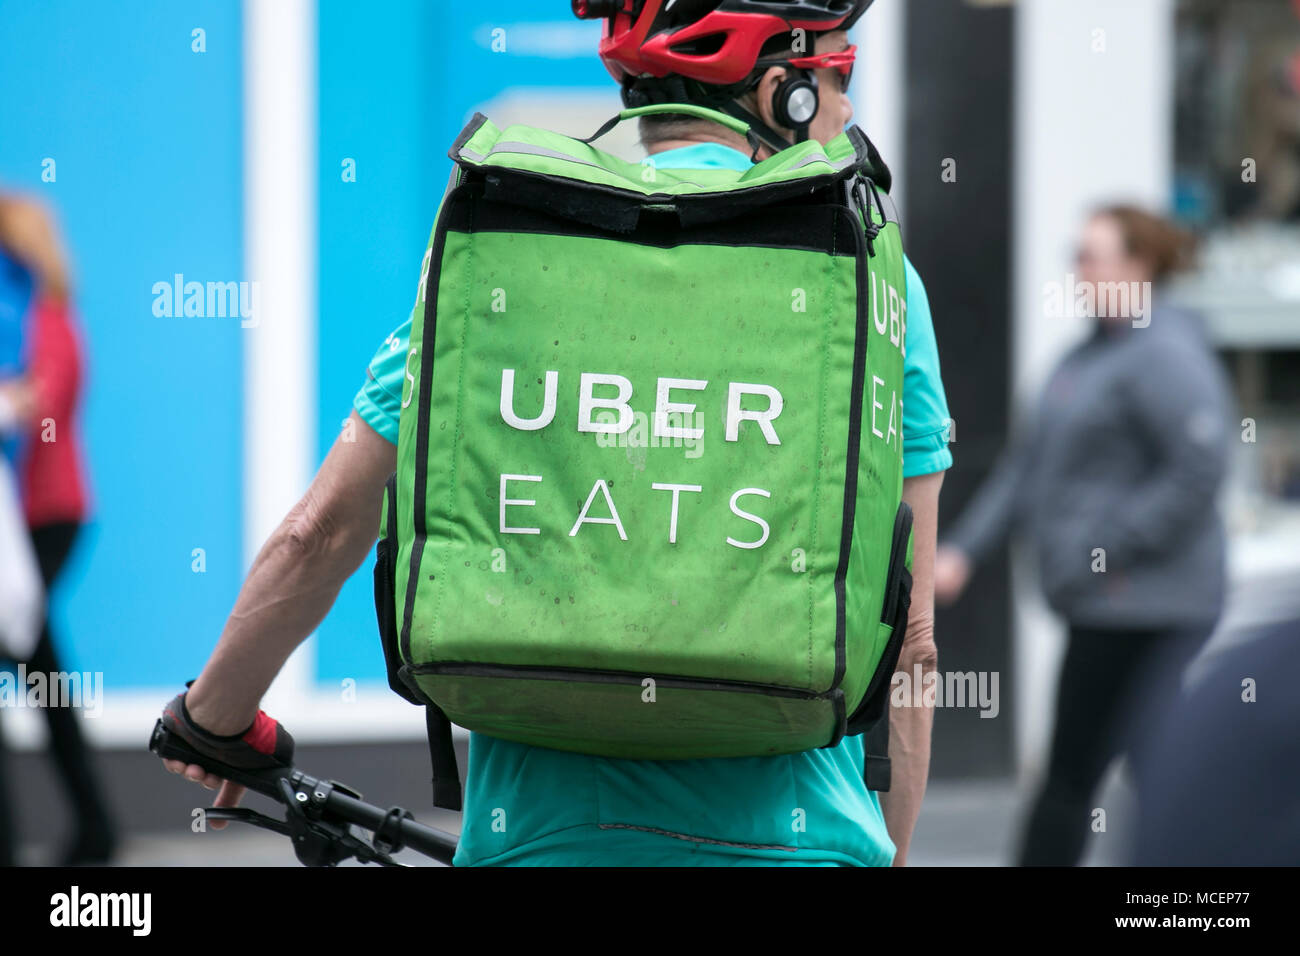 Uber eats take away food delivery smartphone online order cyclist delivering - Stock Image